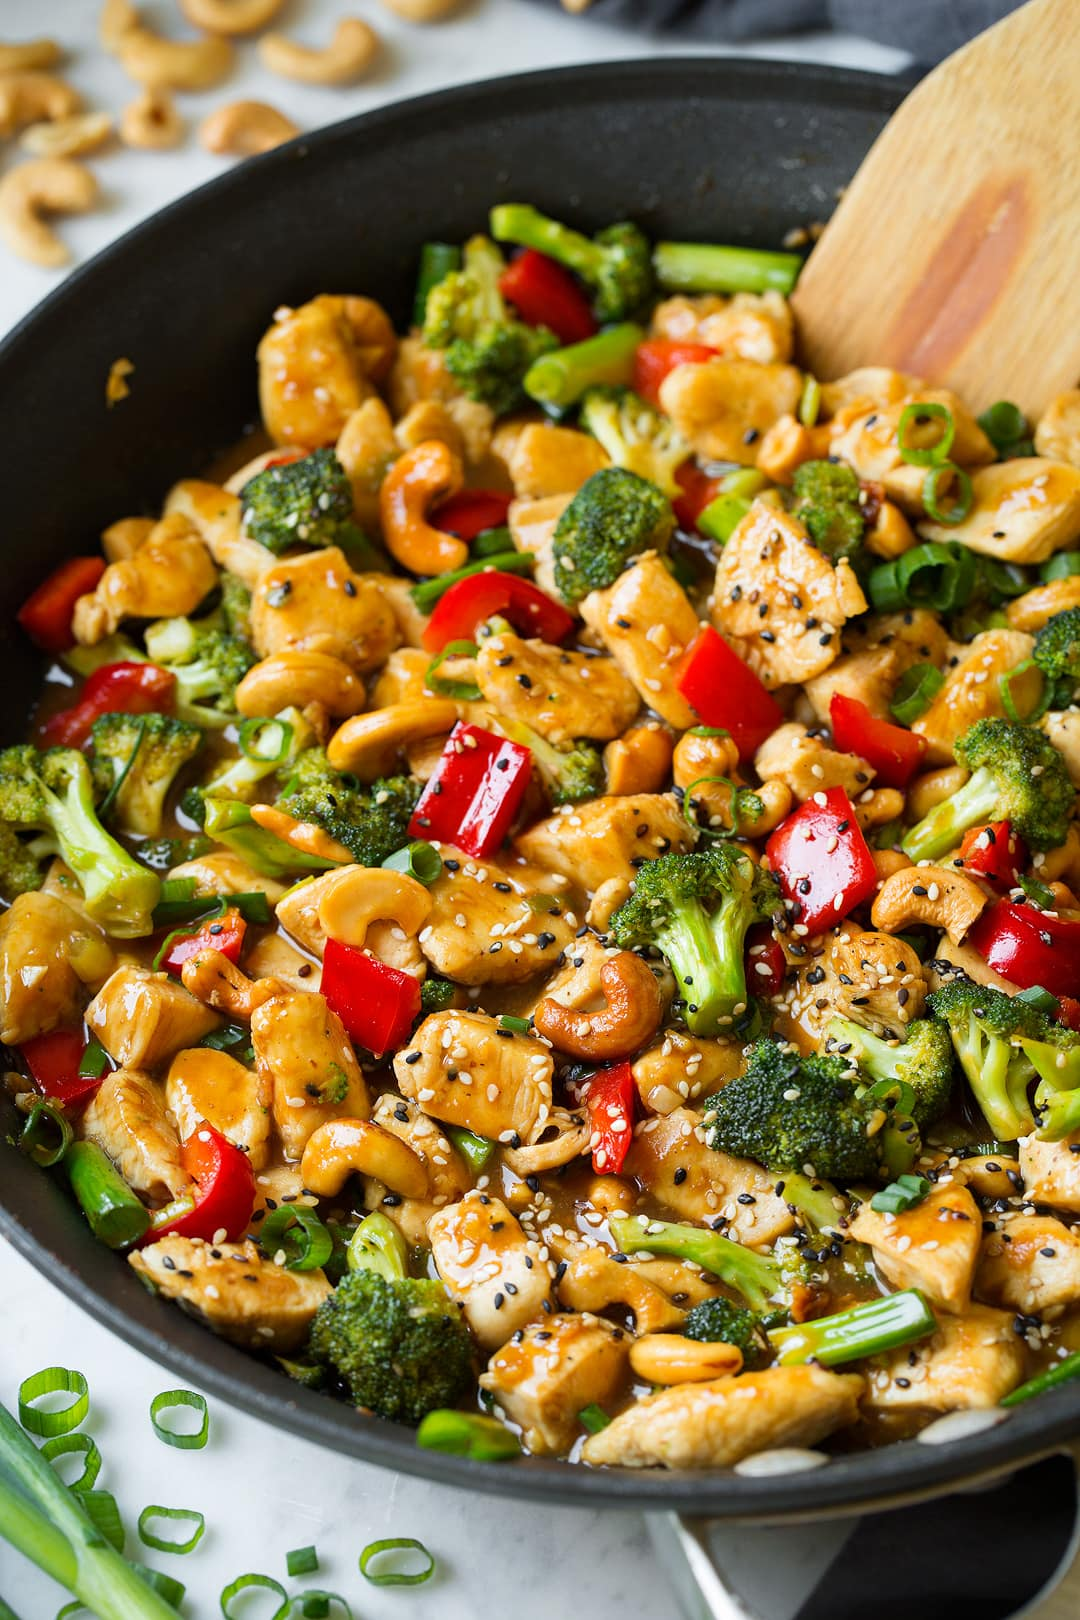 Cashew Chicken shown here in skillet. Includes chicken breasts pieces, broccoli, bell peppers and a sweet and tangy sauce.